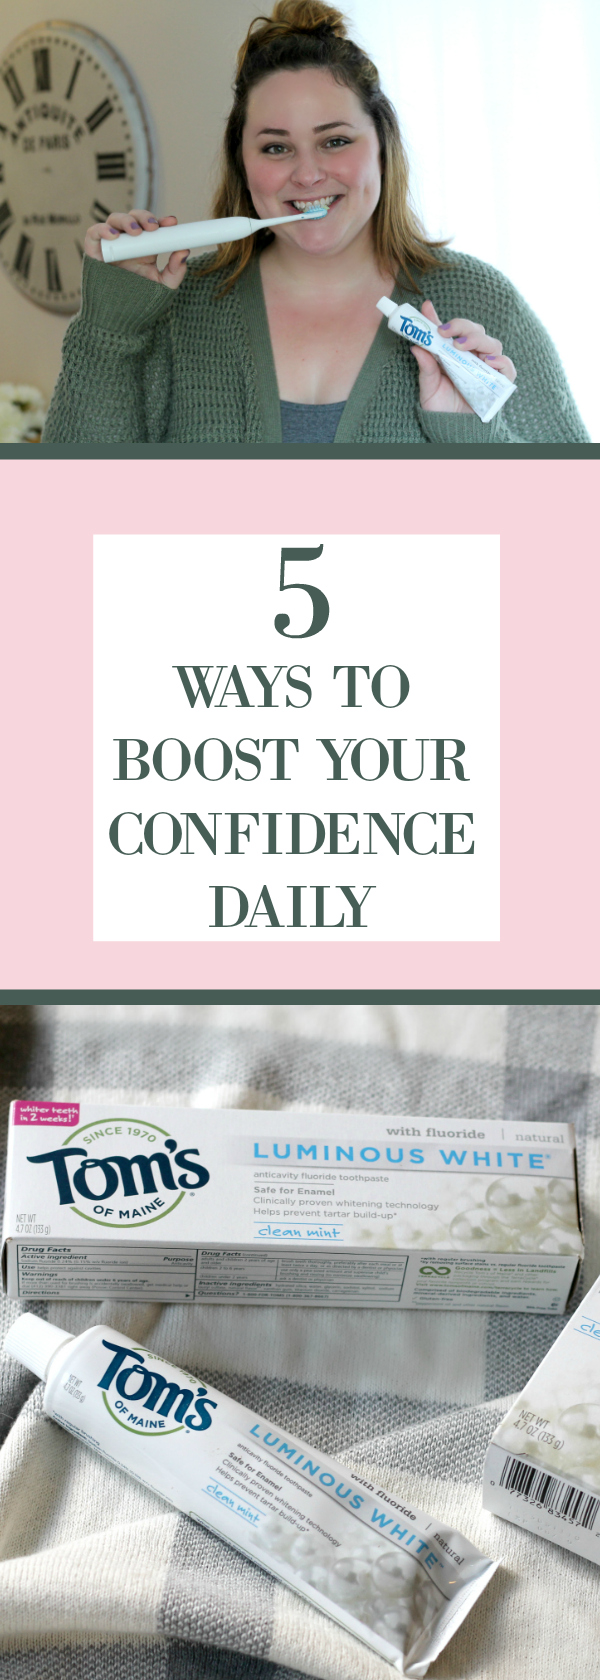 5 Ways to Boost Your Confidence Daily